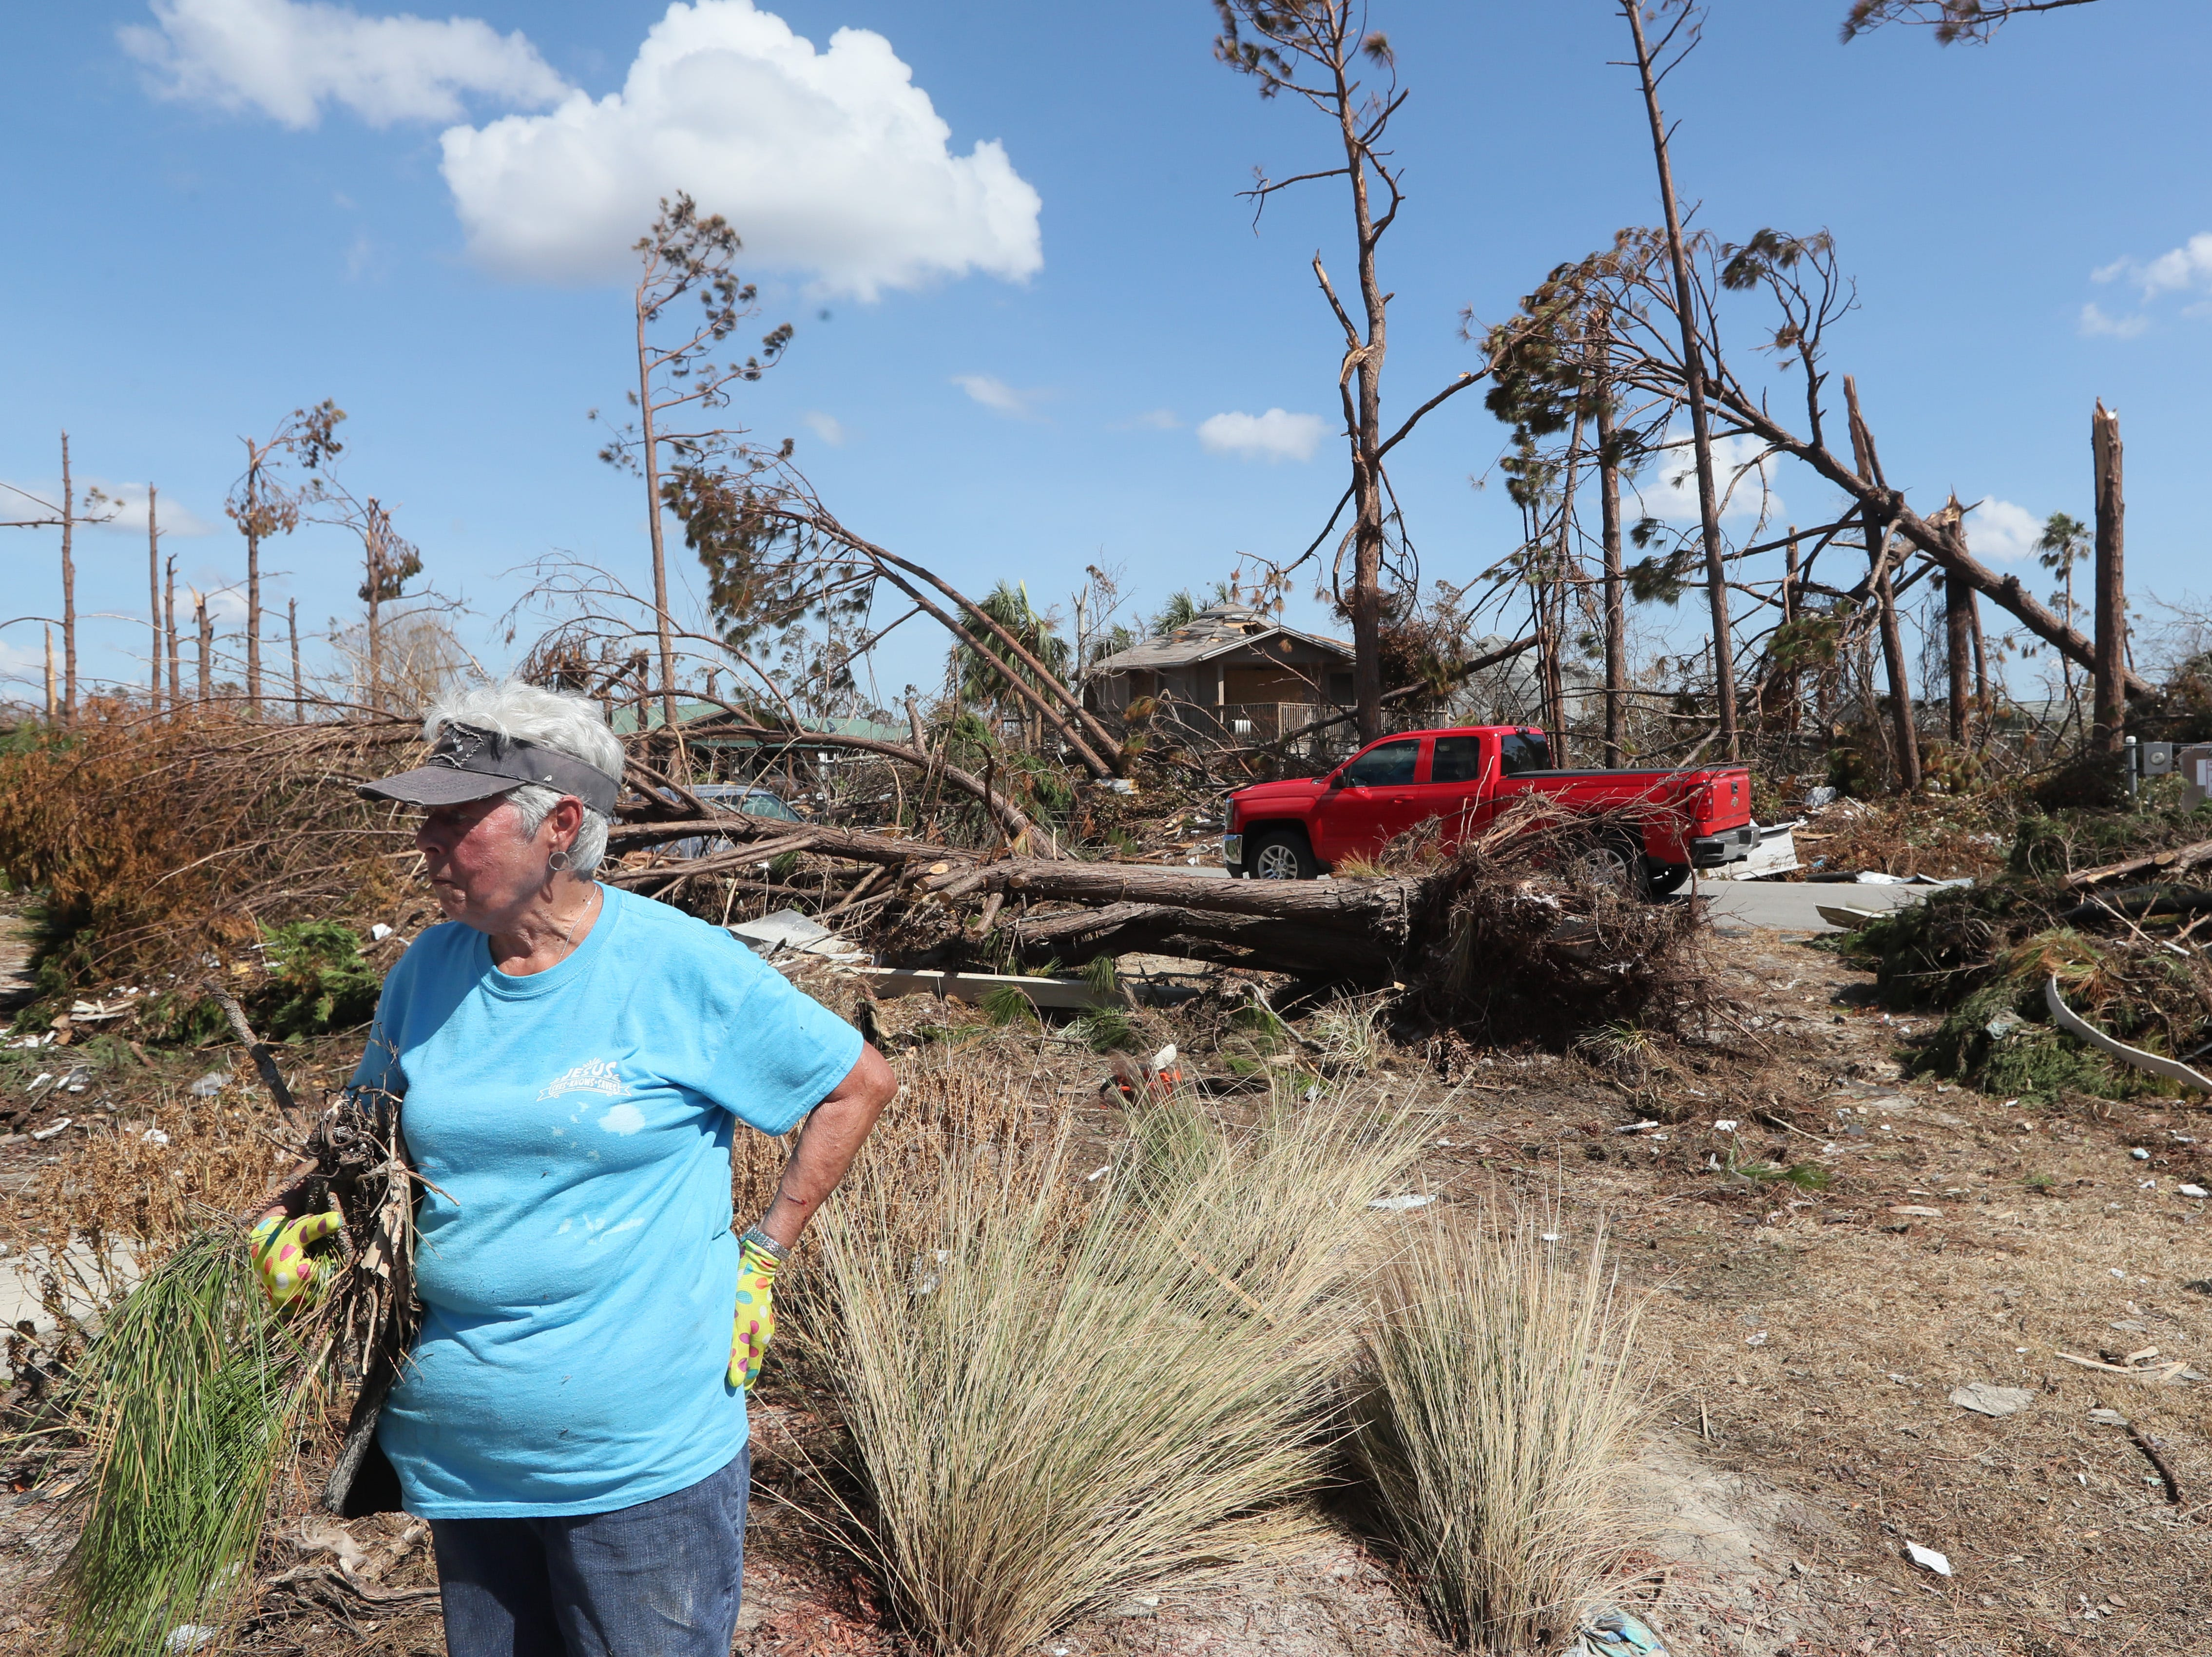 Barbara Redd works to clear the yard of debris at their family vacation home in Mexico Beach on Wednesday, Oct. 17, 2018, one week after Hurricane Michael ripped through the coastal Florida town.